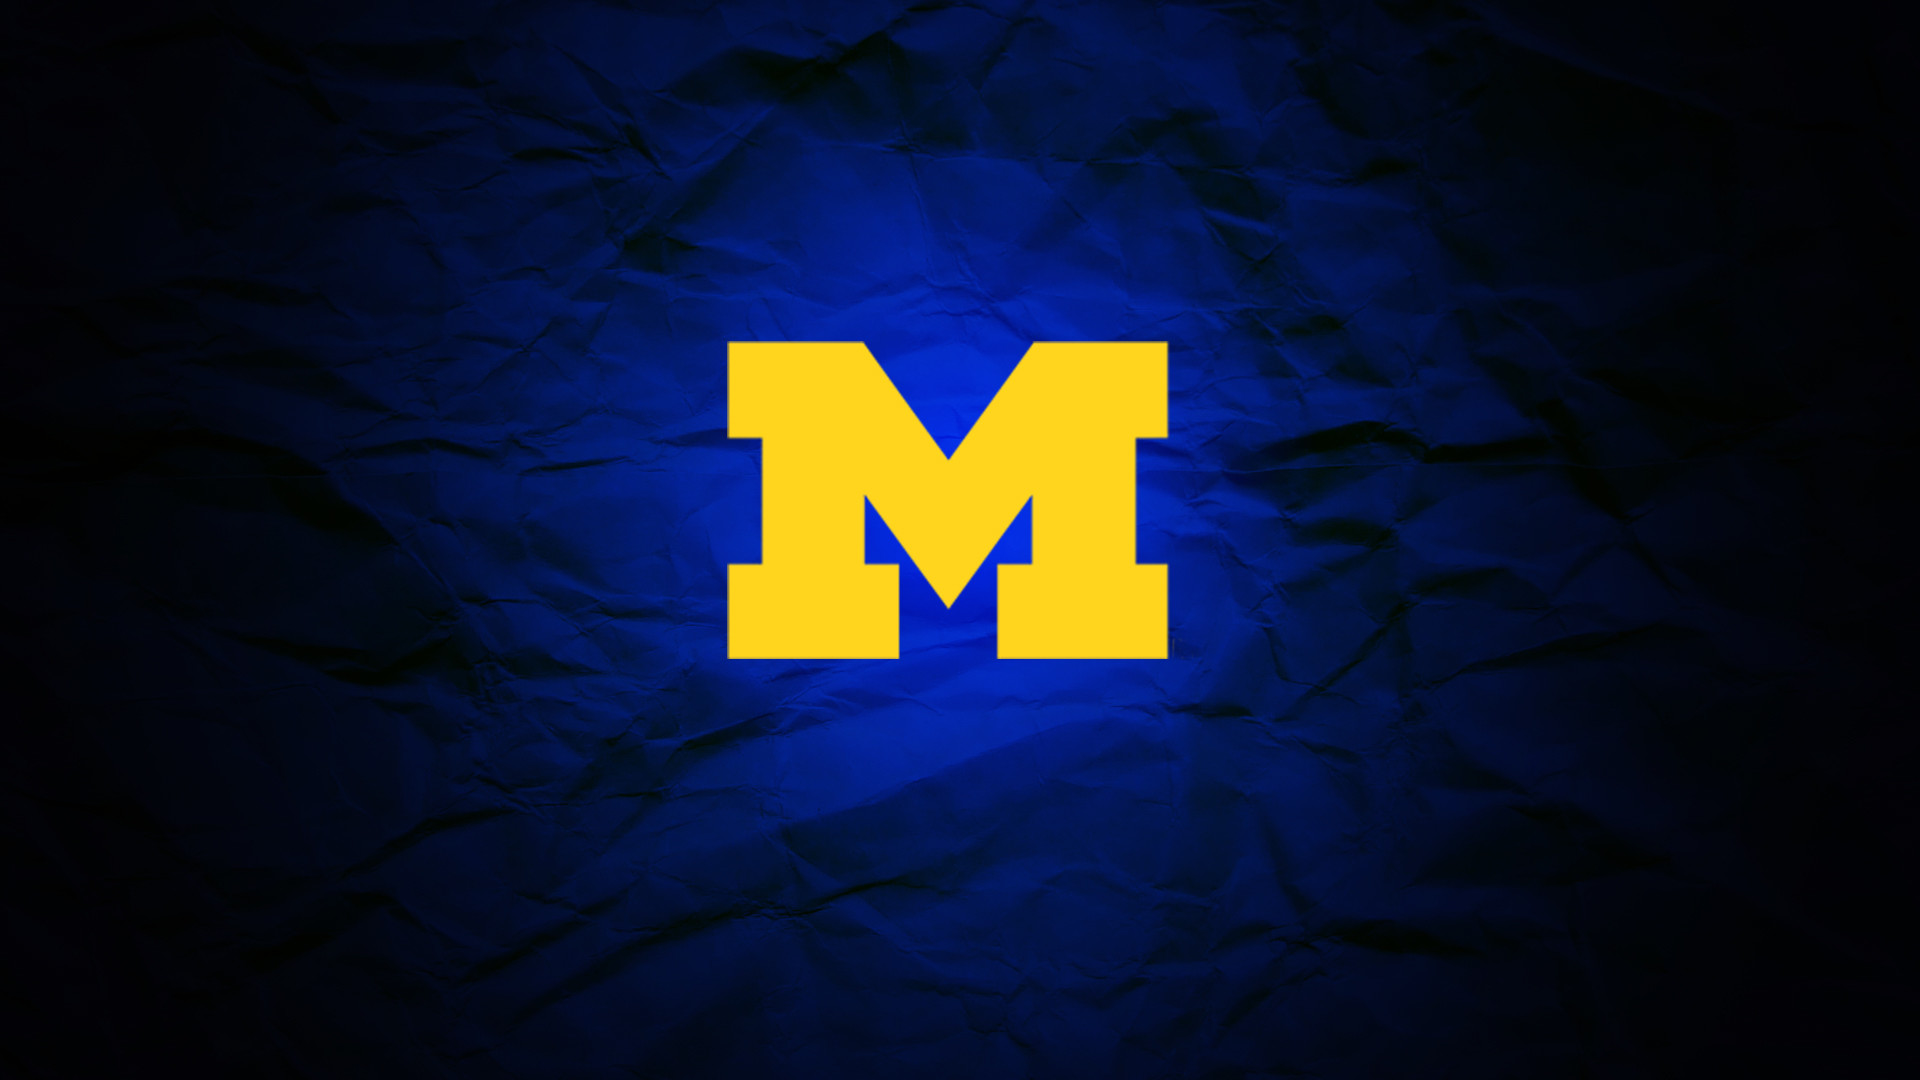 1920x1080 com big ten conference michigan wolverines filesize 320x480 73k .